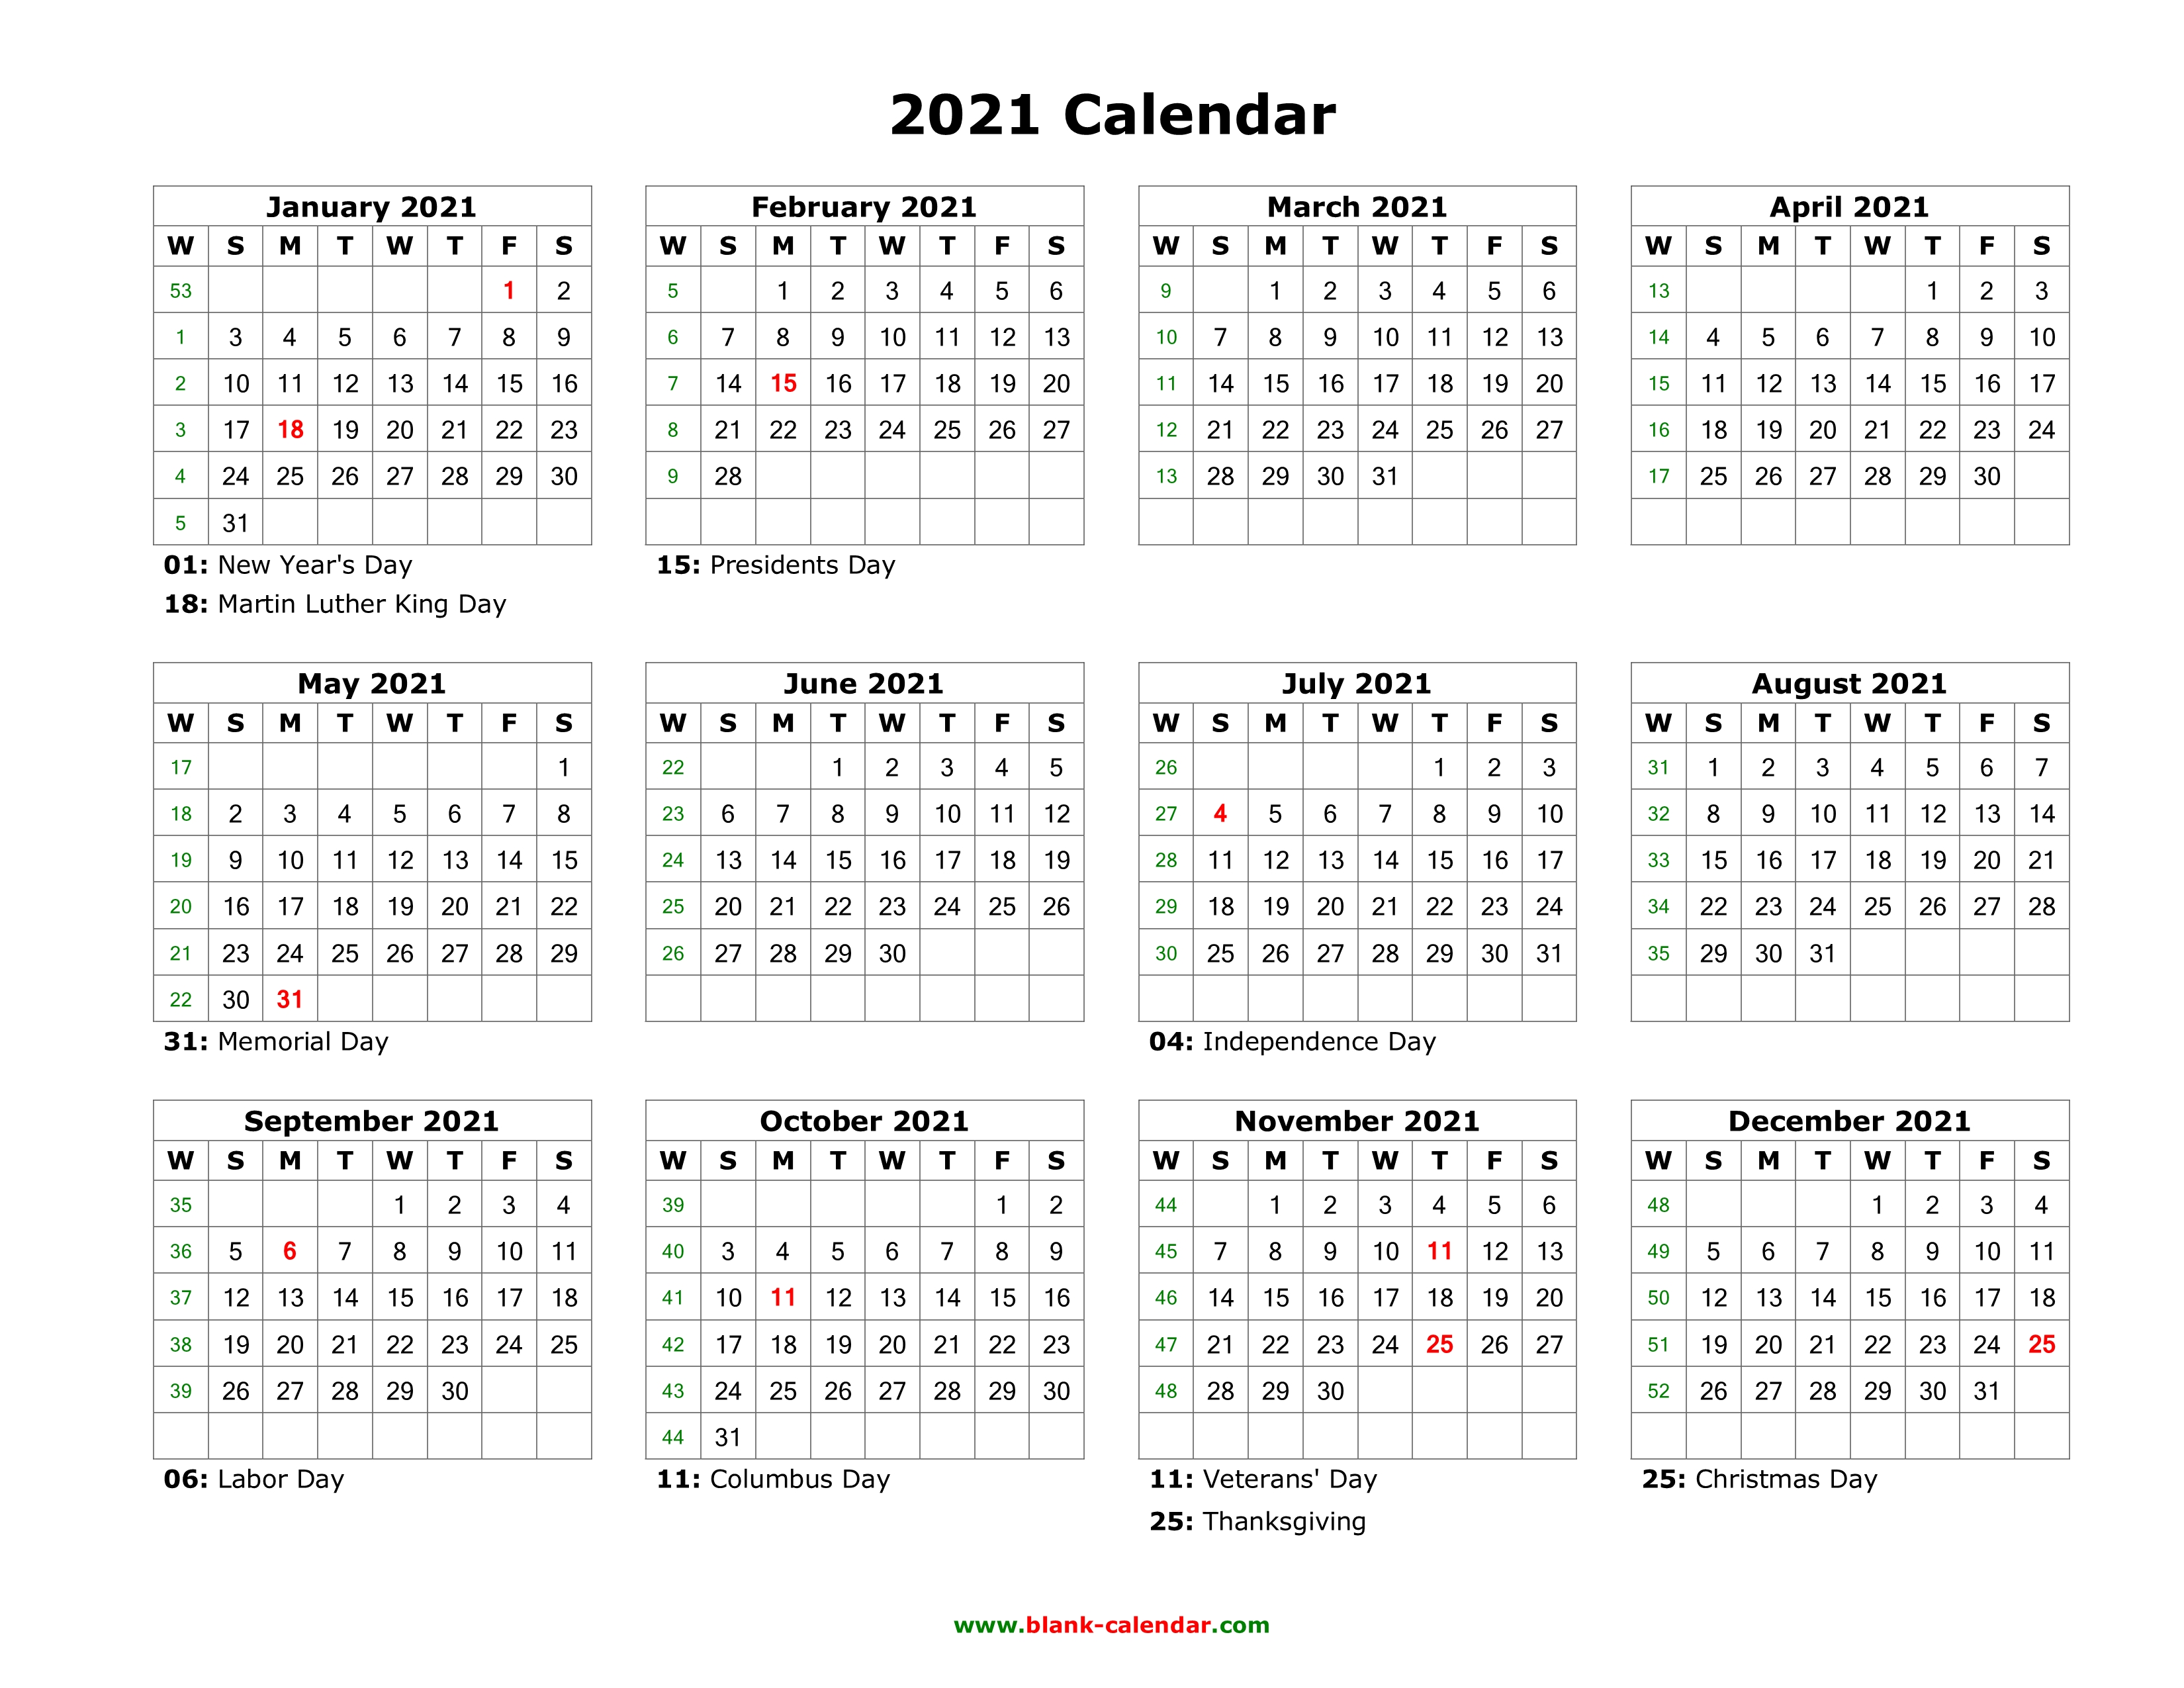 Editable Calendar Template 2021 Blank Calendar 2021 | Free Download Calendar Templates